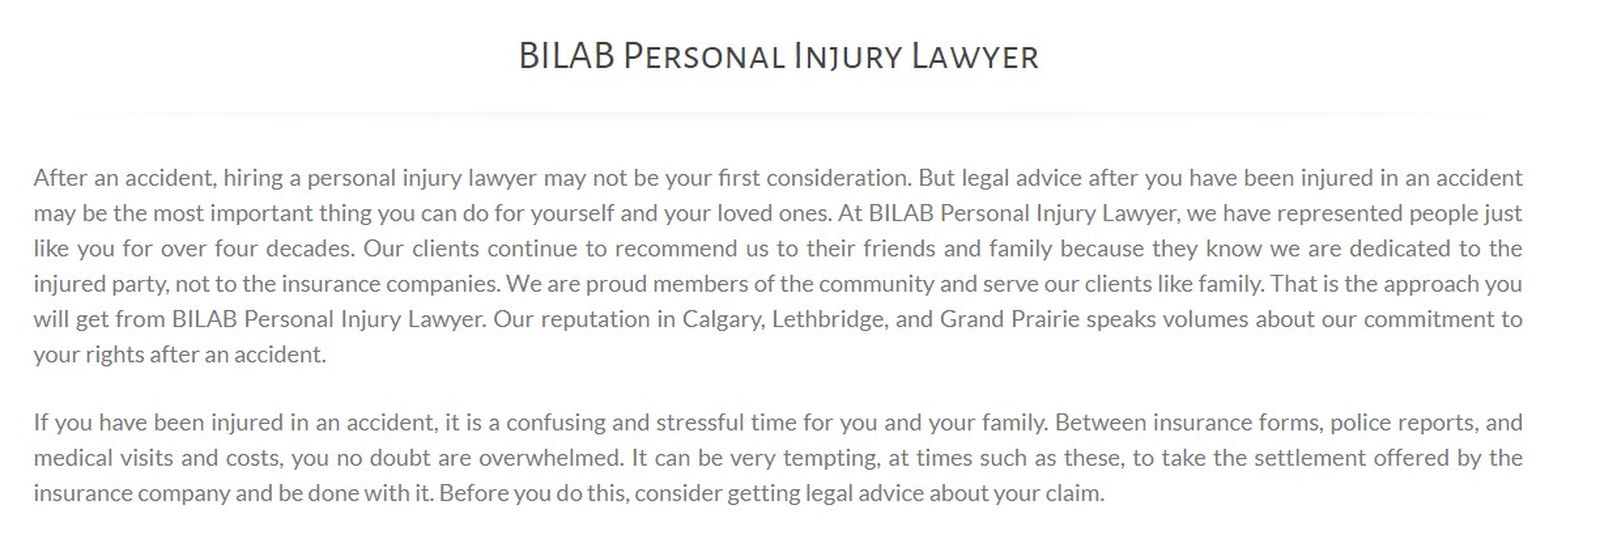 BILAB Personal Injury Lawyer 105 8 St S Unit B Lethbridge, AB T1J 2J4 (587) 813-0567 Injury Lawyer In Lethbridge Injury Lawyer Lethbridge Lethbridge Personal Injury Lawyer Personal Injury Lawyer In Lethbridge Personal Injury Lawyer Lethbridge